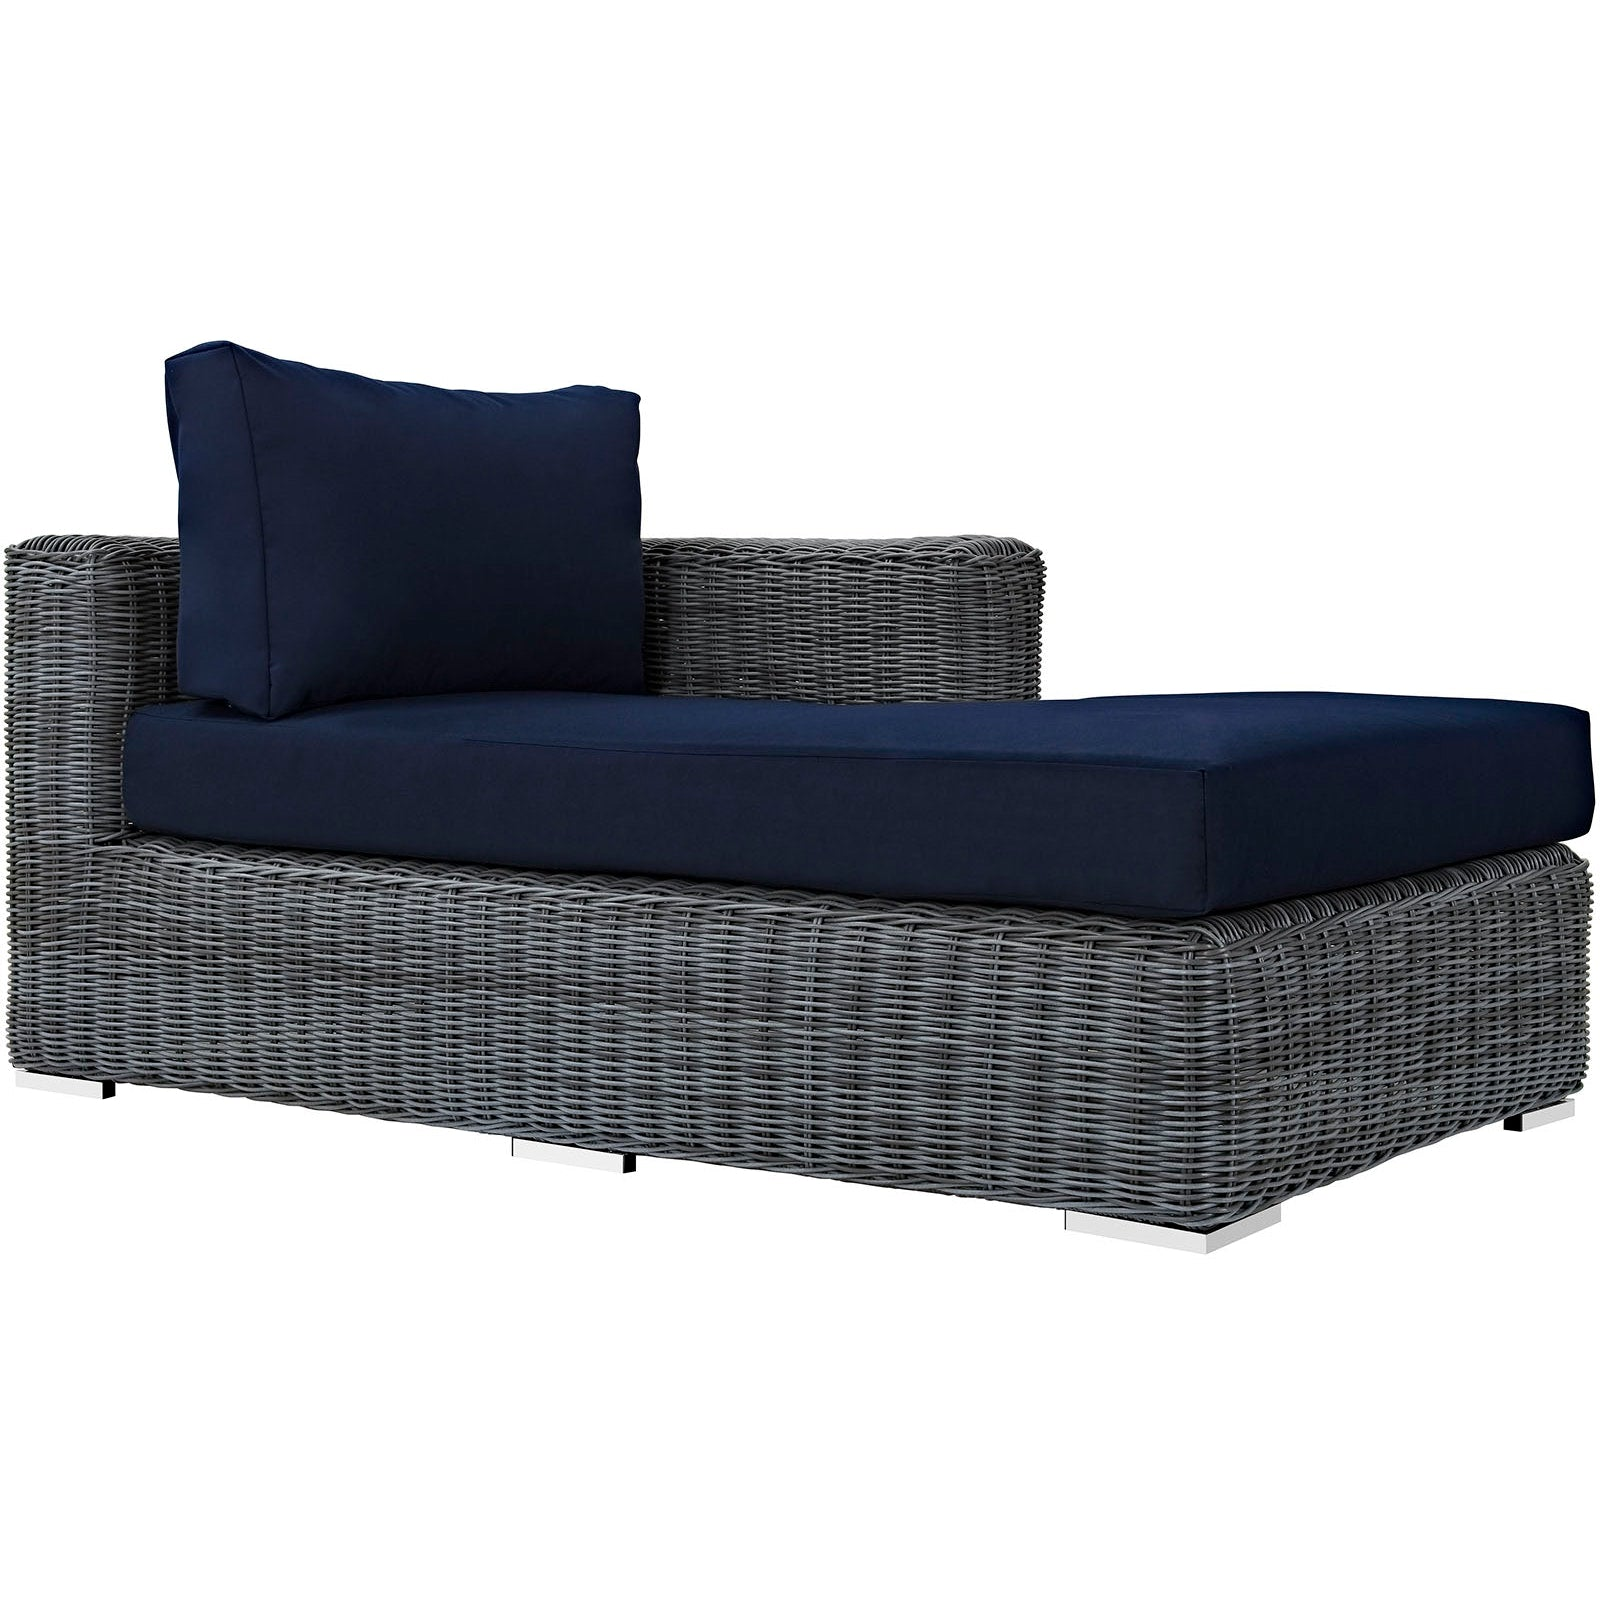 Summon Outdoor Patio Sunbrella® Right Arm Chaise - Canvas Navy